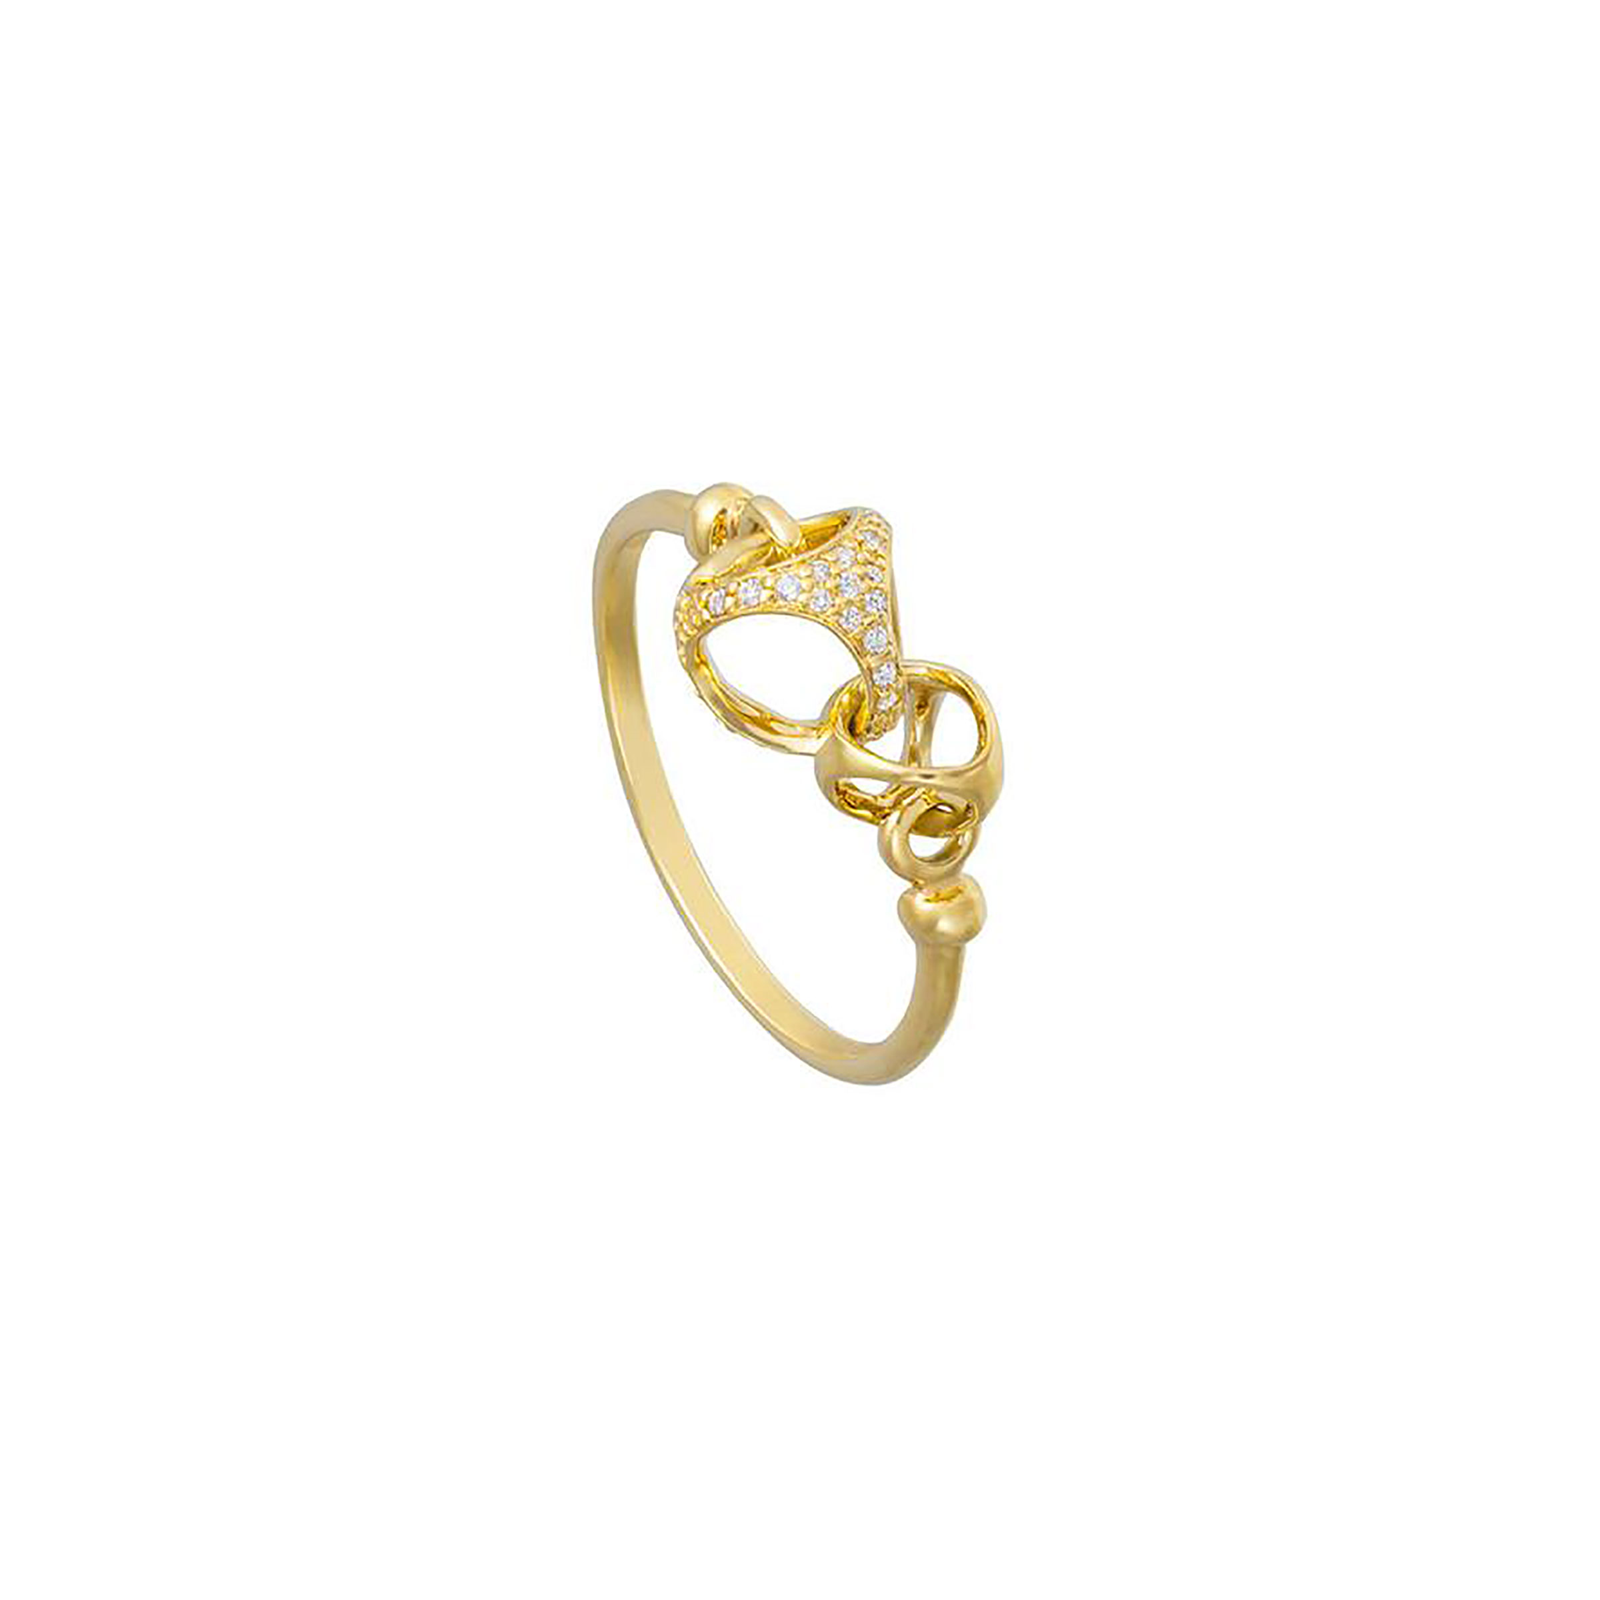 Di Modolo Linked By Love 18ct Gold and 0.13cttw Diamond Ring - Ring Size M